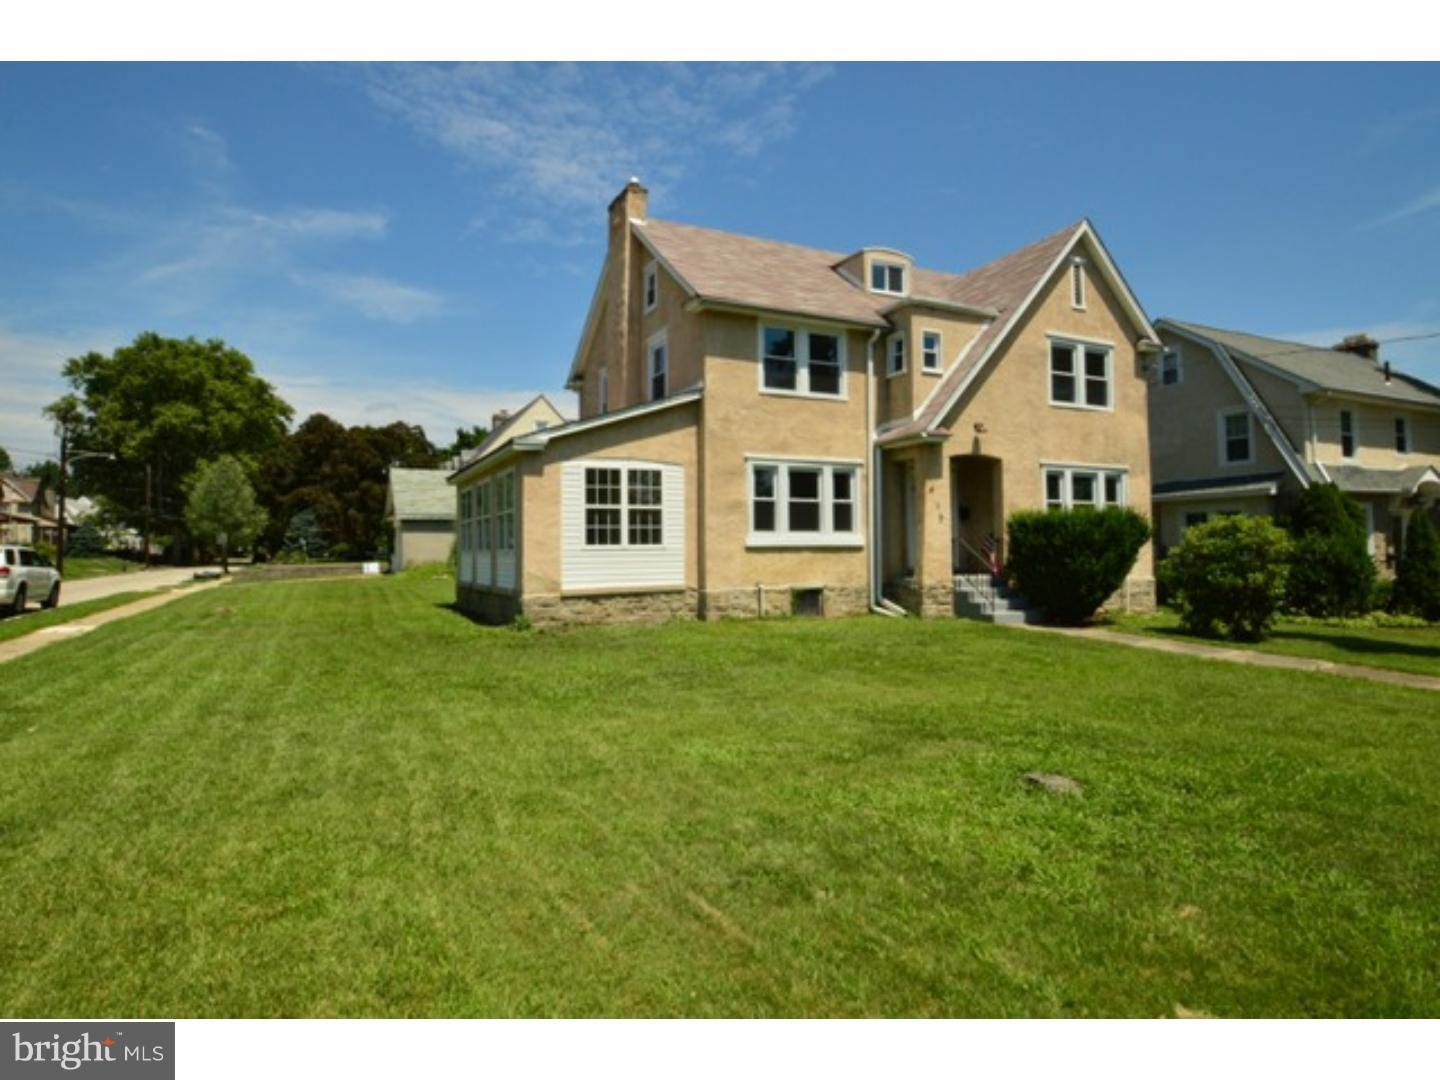 4115 STATE ROAD, DREXEL HILL, PA 19026